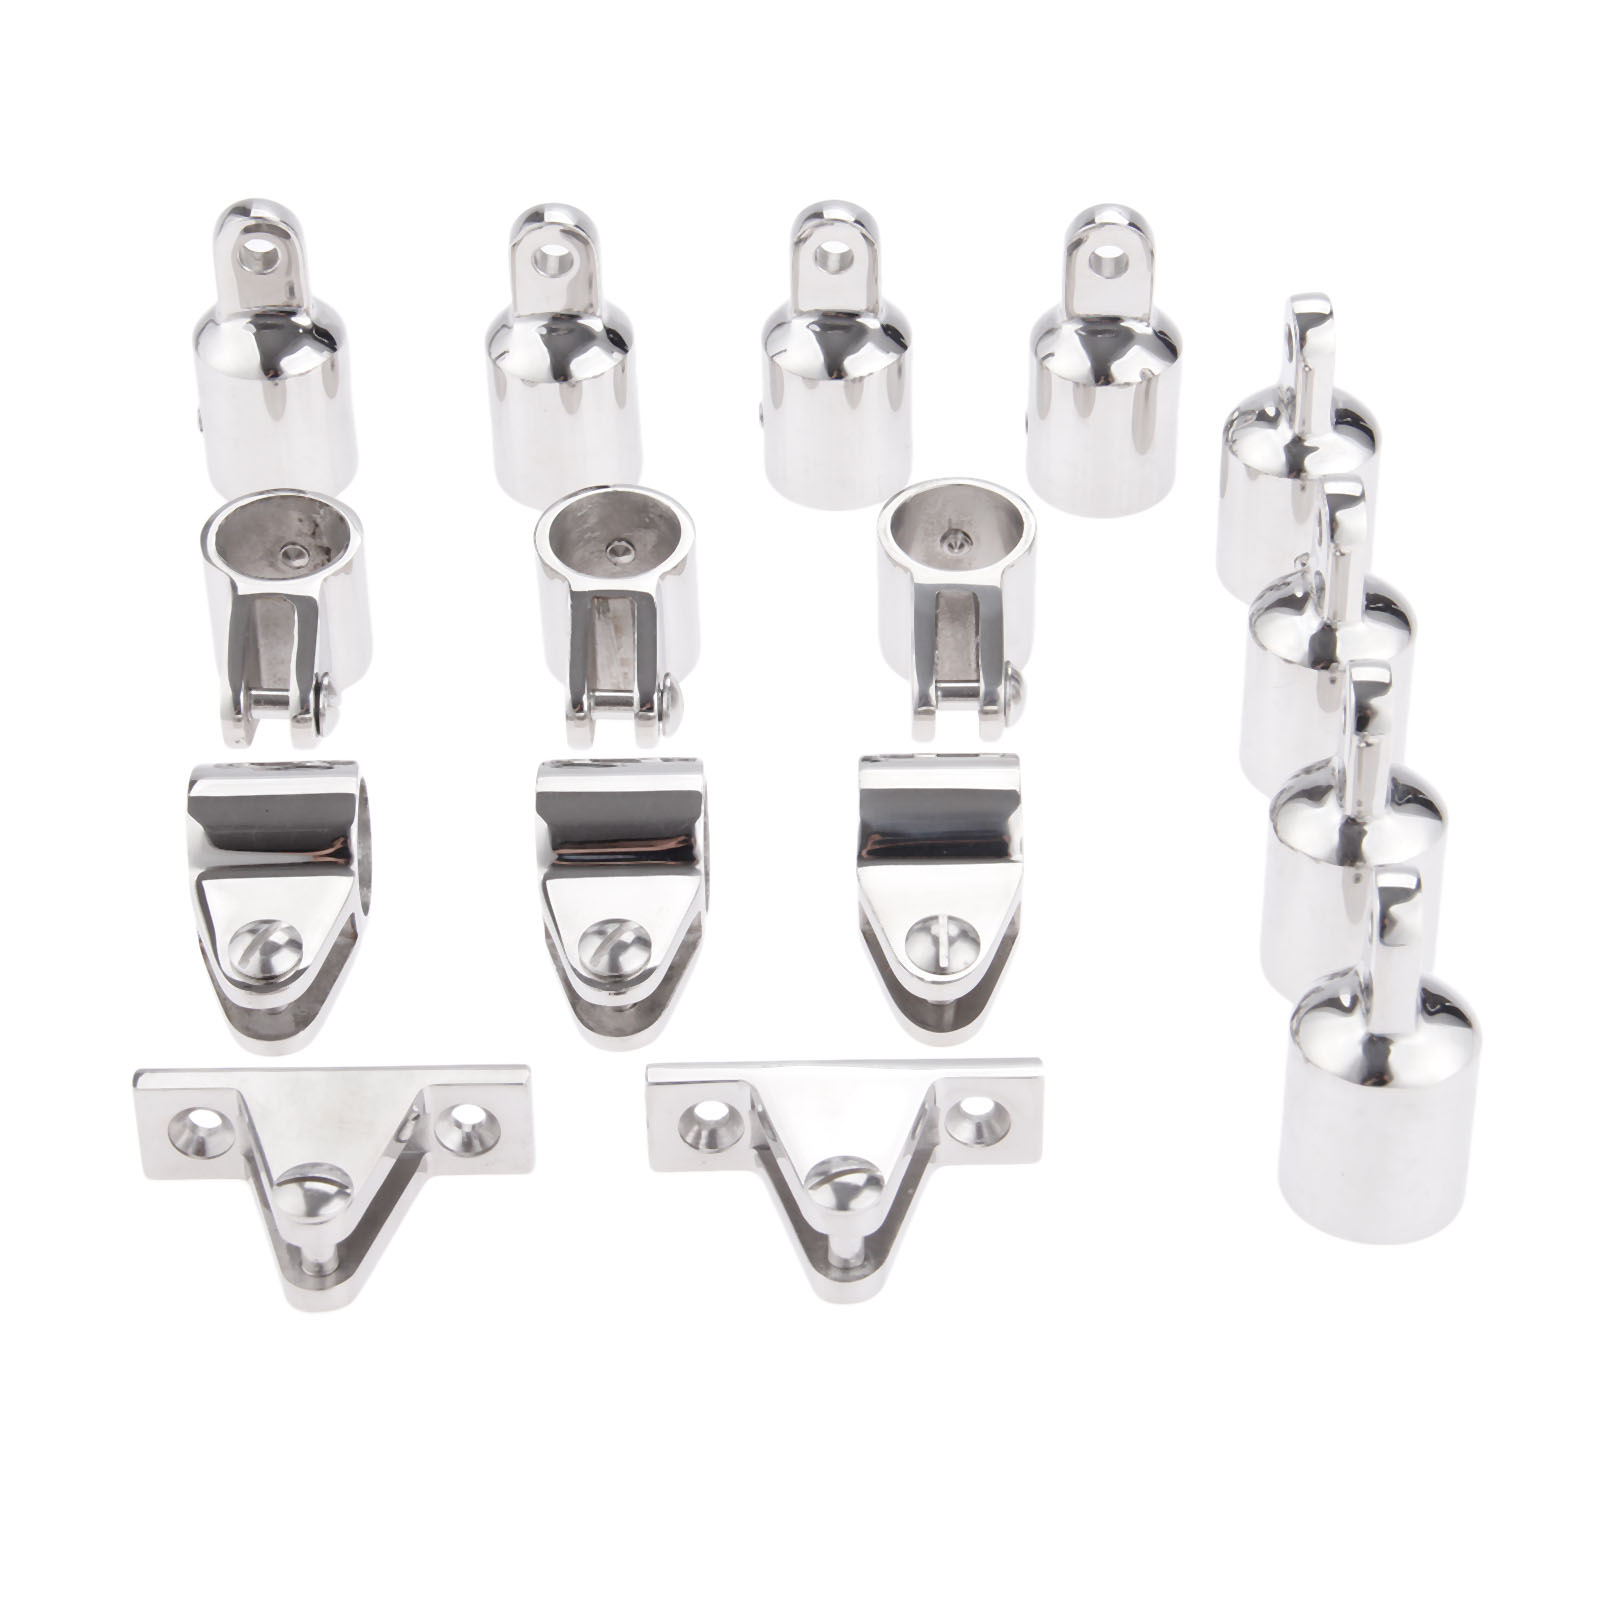 "16pcs Boat Fittings Hardware 7//8/"" Deck Hinge Accessories Set for 4-Bow Boat"